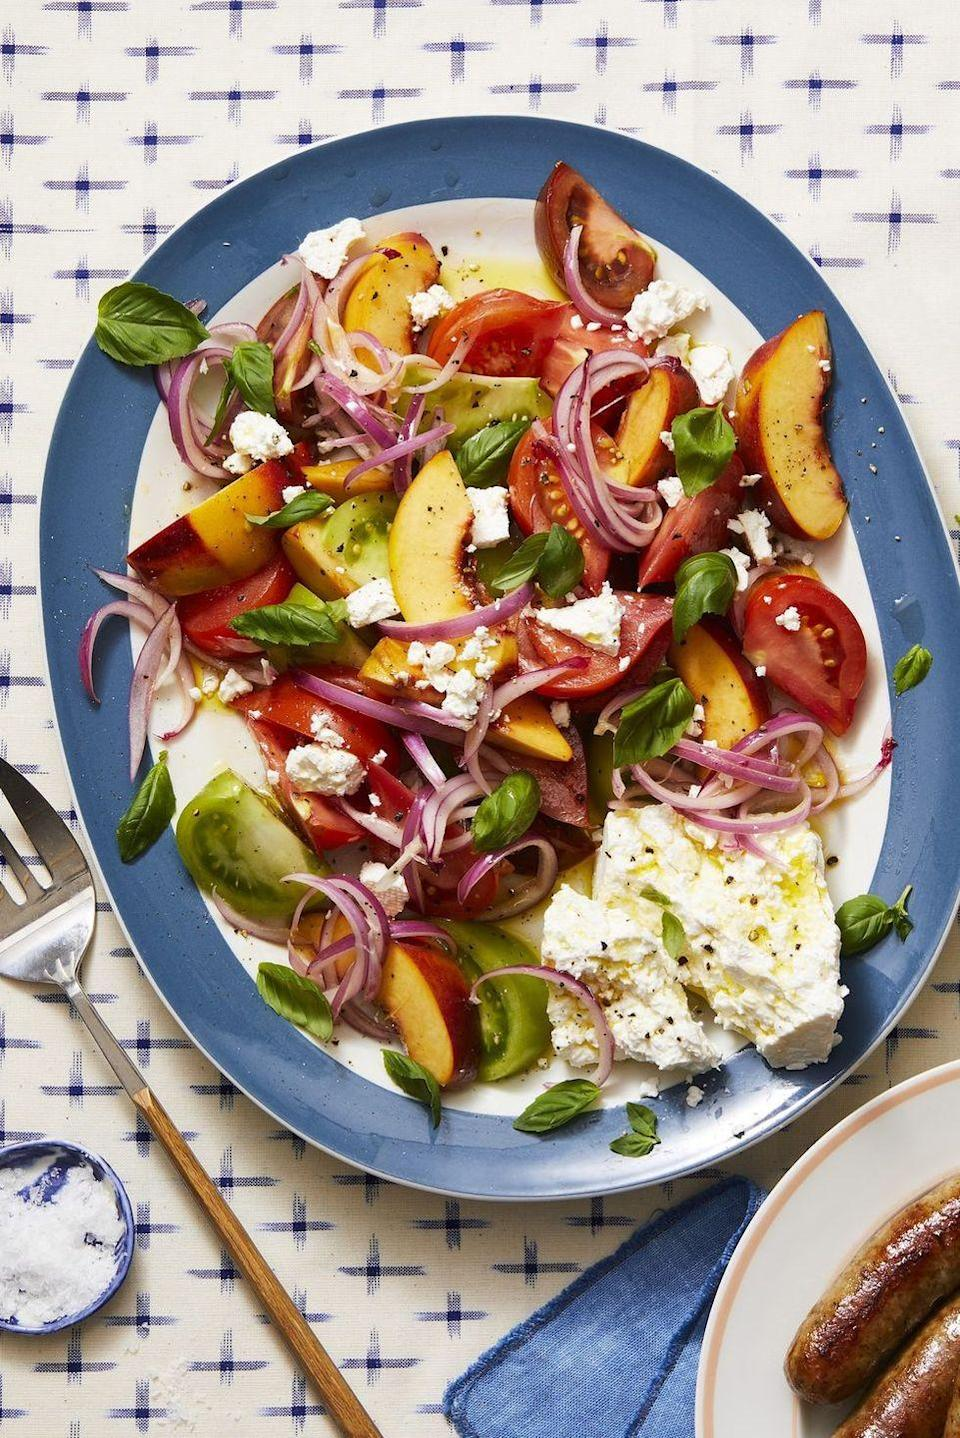 """<p>Pickled onions and feta bring out this sweet summer fruit's delightfully savory side. <a href=""""https://www.goodhousekeeping.com/food-recipes/a28611633/tomato-peach-and-basil-salad-with-italian-sausage-recipe/"""" rel=""""nofollow noopener"""" target=""""_blank"""" data-ylk=""""slk:Try it with sausage"""" class=""""link rapid-noclick-resp"""">Try it with sausage</a> for a spicy edge!</p><p><em><a href=""""https://www.goodhousekeeping.com/food-recipes/a28136659/tomato-peach-and-basil-salad-recipe/"""" rel=""""nofollow noopener"""" target=""""_blank"""" data-ylk=""""slk:Get the recipe for Tomato, Peach, and Basil Salad »"""" class=""""link rapid-noclick-resp"""">Get the recipe for Tomato, Peach, and Basil Salad »</a></em></p>"""